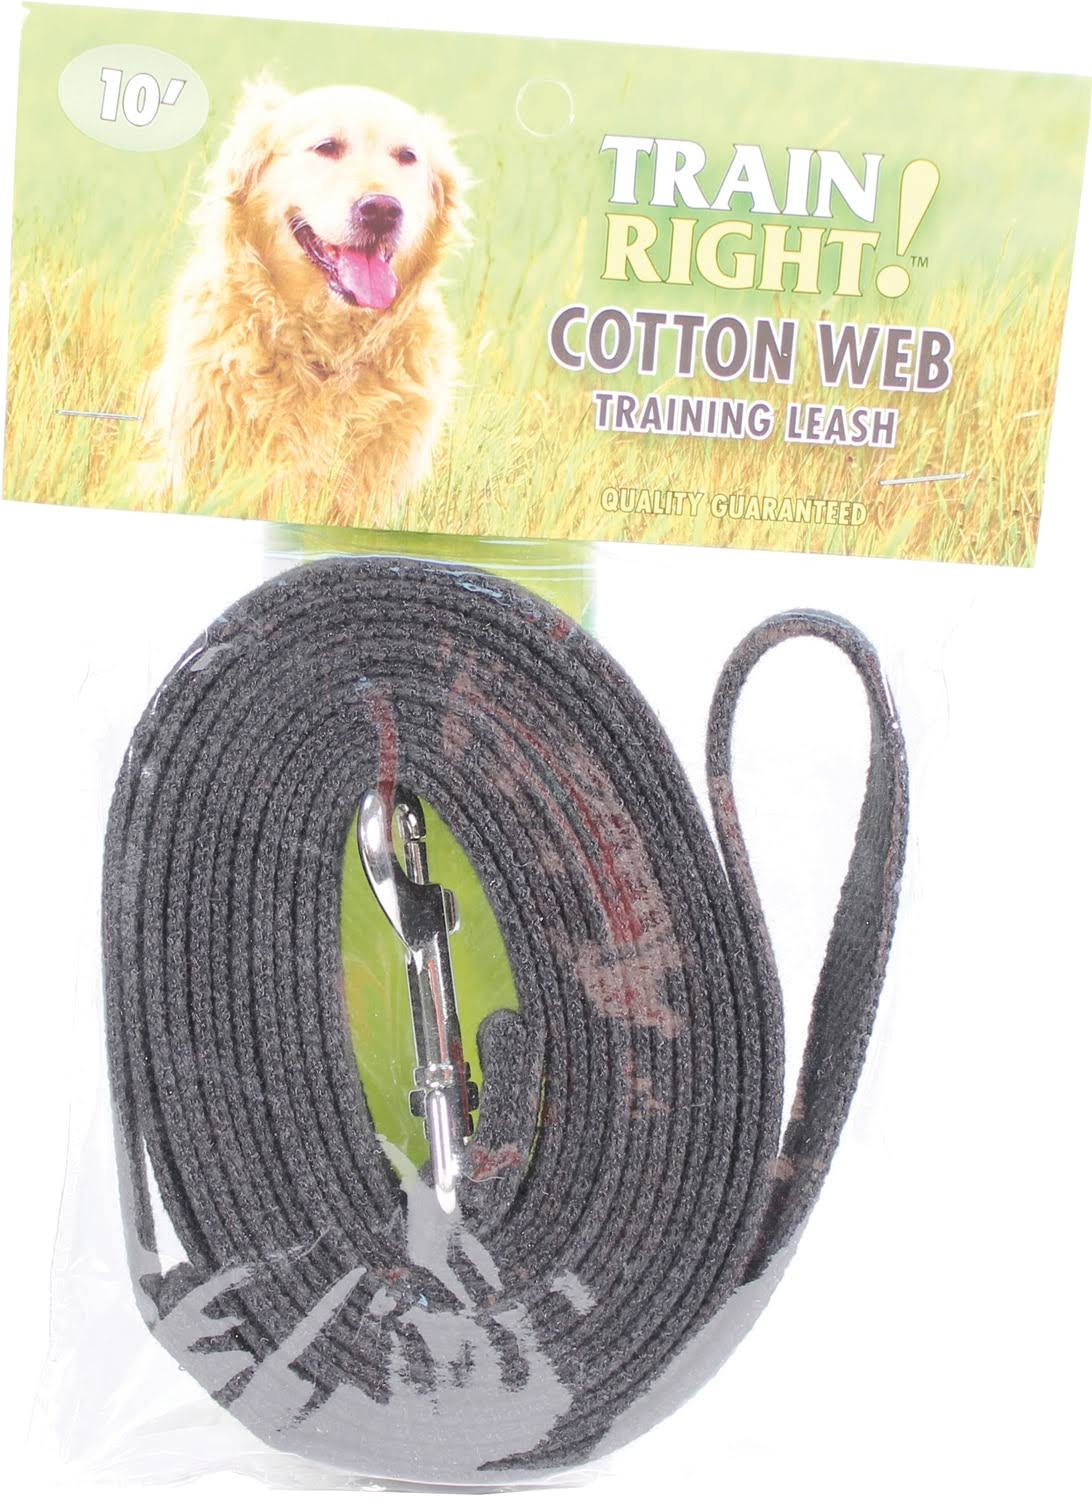 Coastal Cotton Web Training Dog Leash - Black, 10'